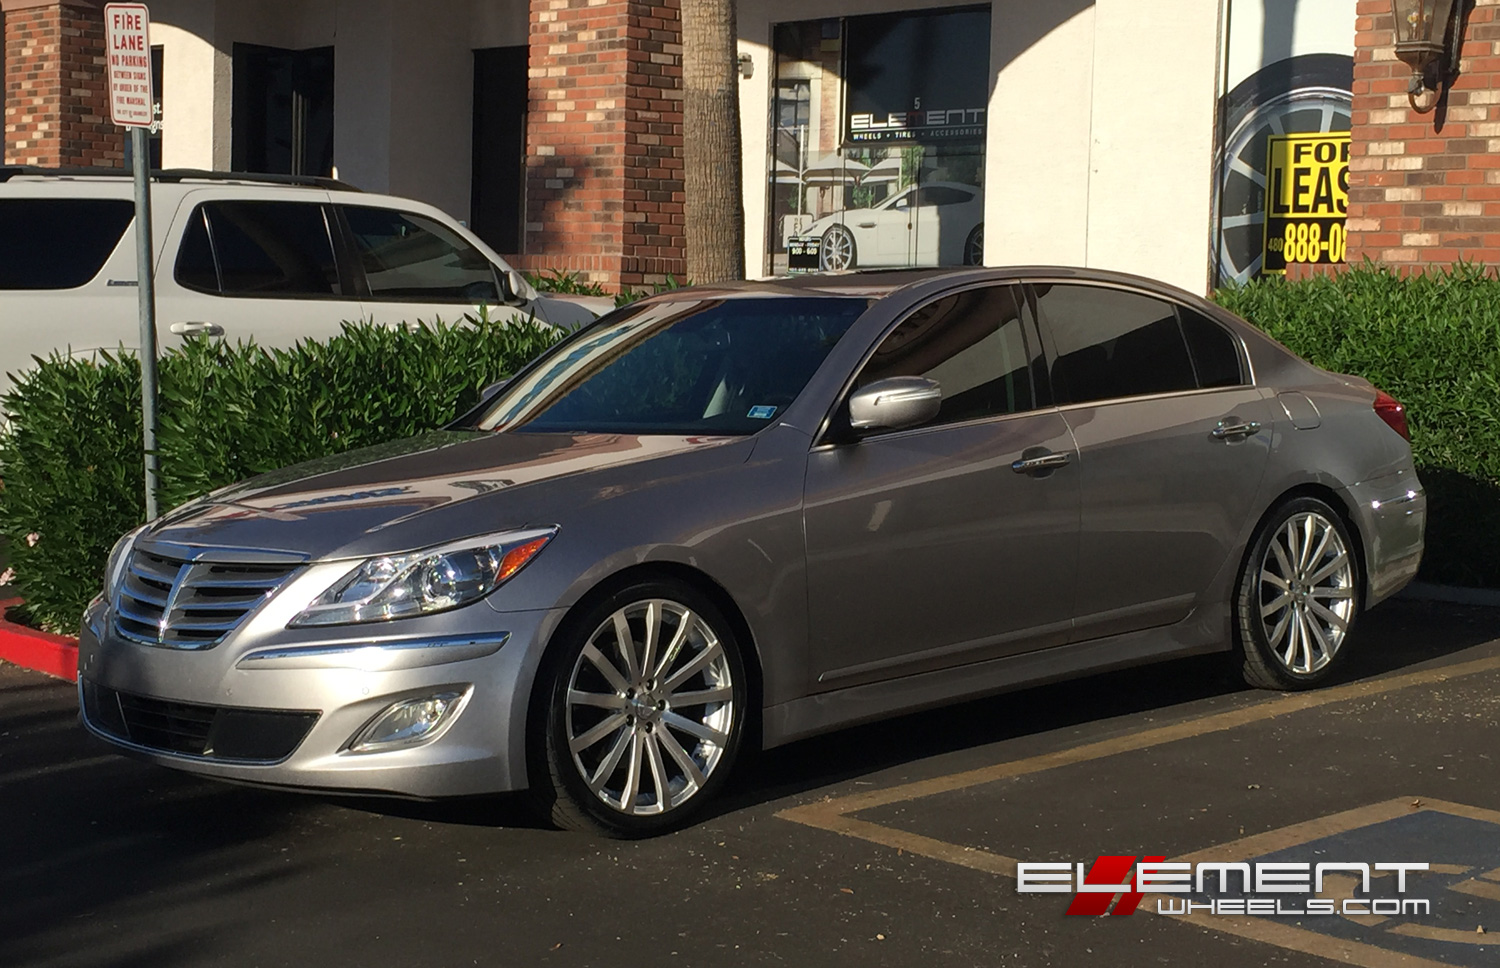 20 Inch Mrr Hr9 Wheels On 2012 Hyundai Genesis Sedan W